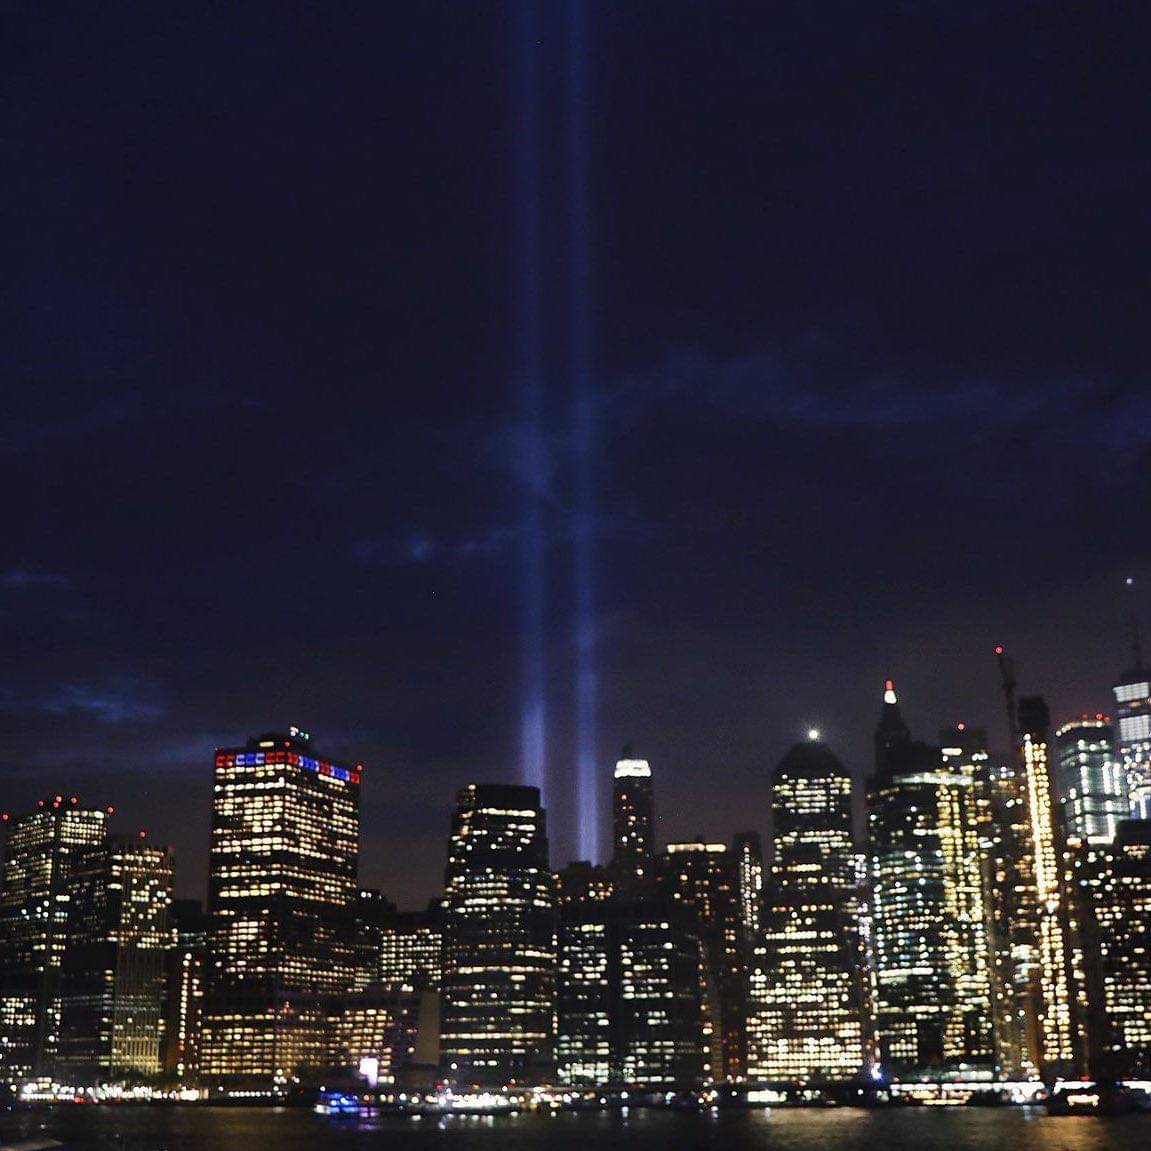 Emotional day in NYC. Never forget the innocent lives lost 18 years ago. Never forget the heroes who stepped in. Never forget their bravery. Remember them today and every day. #NeverForget #torresgemelas #11Sep <br>http://pic.twitter.com/V1kgZGFvKC